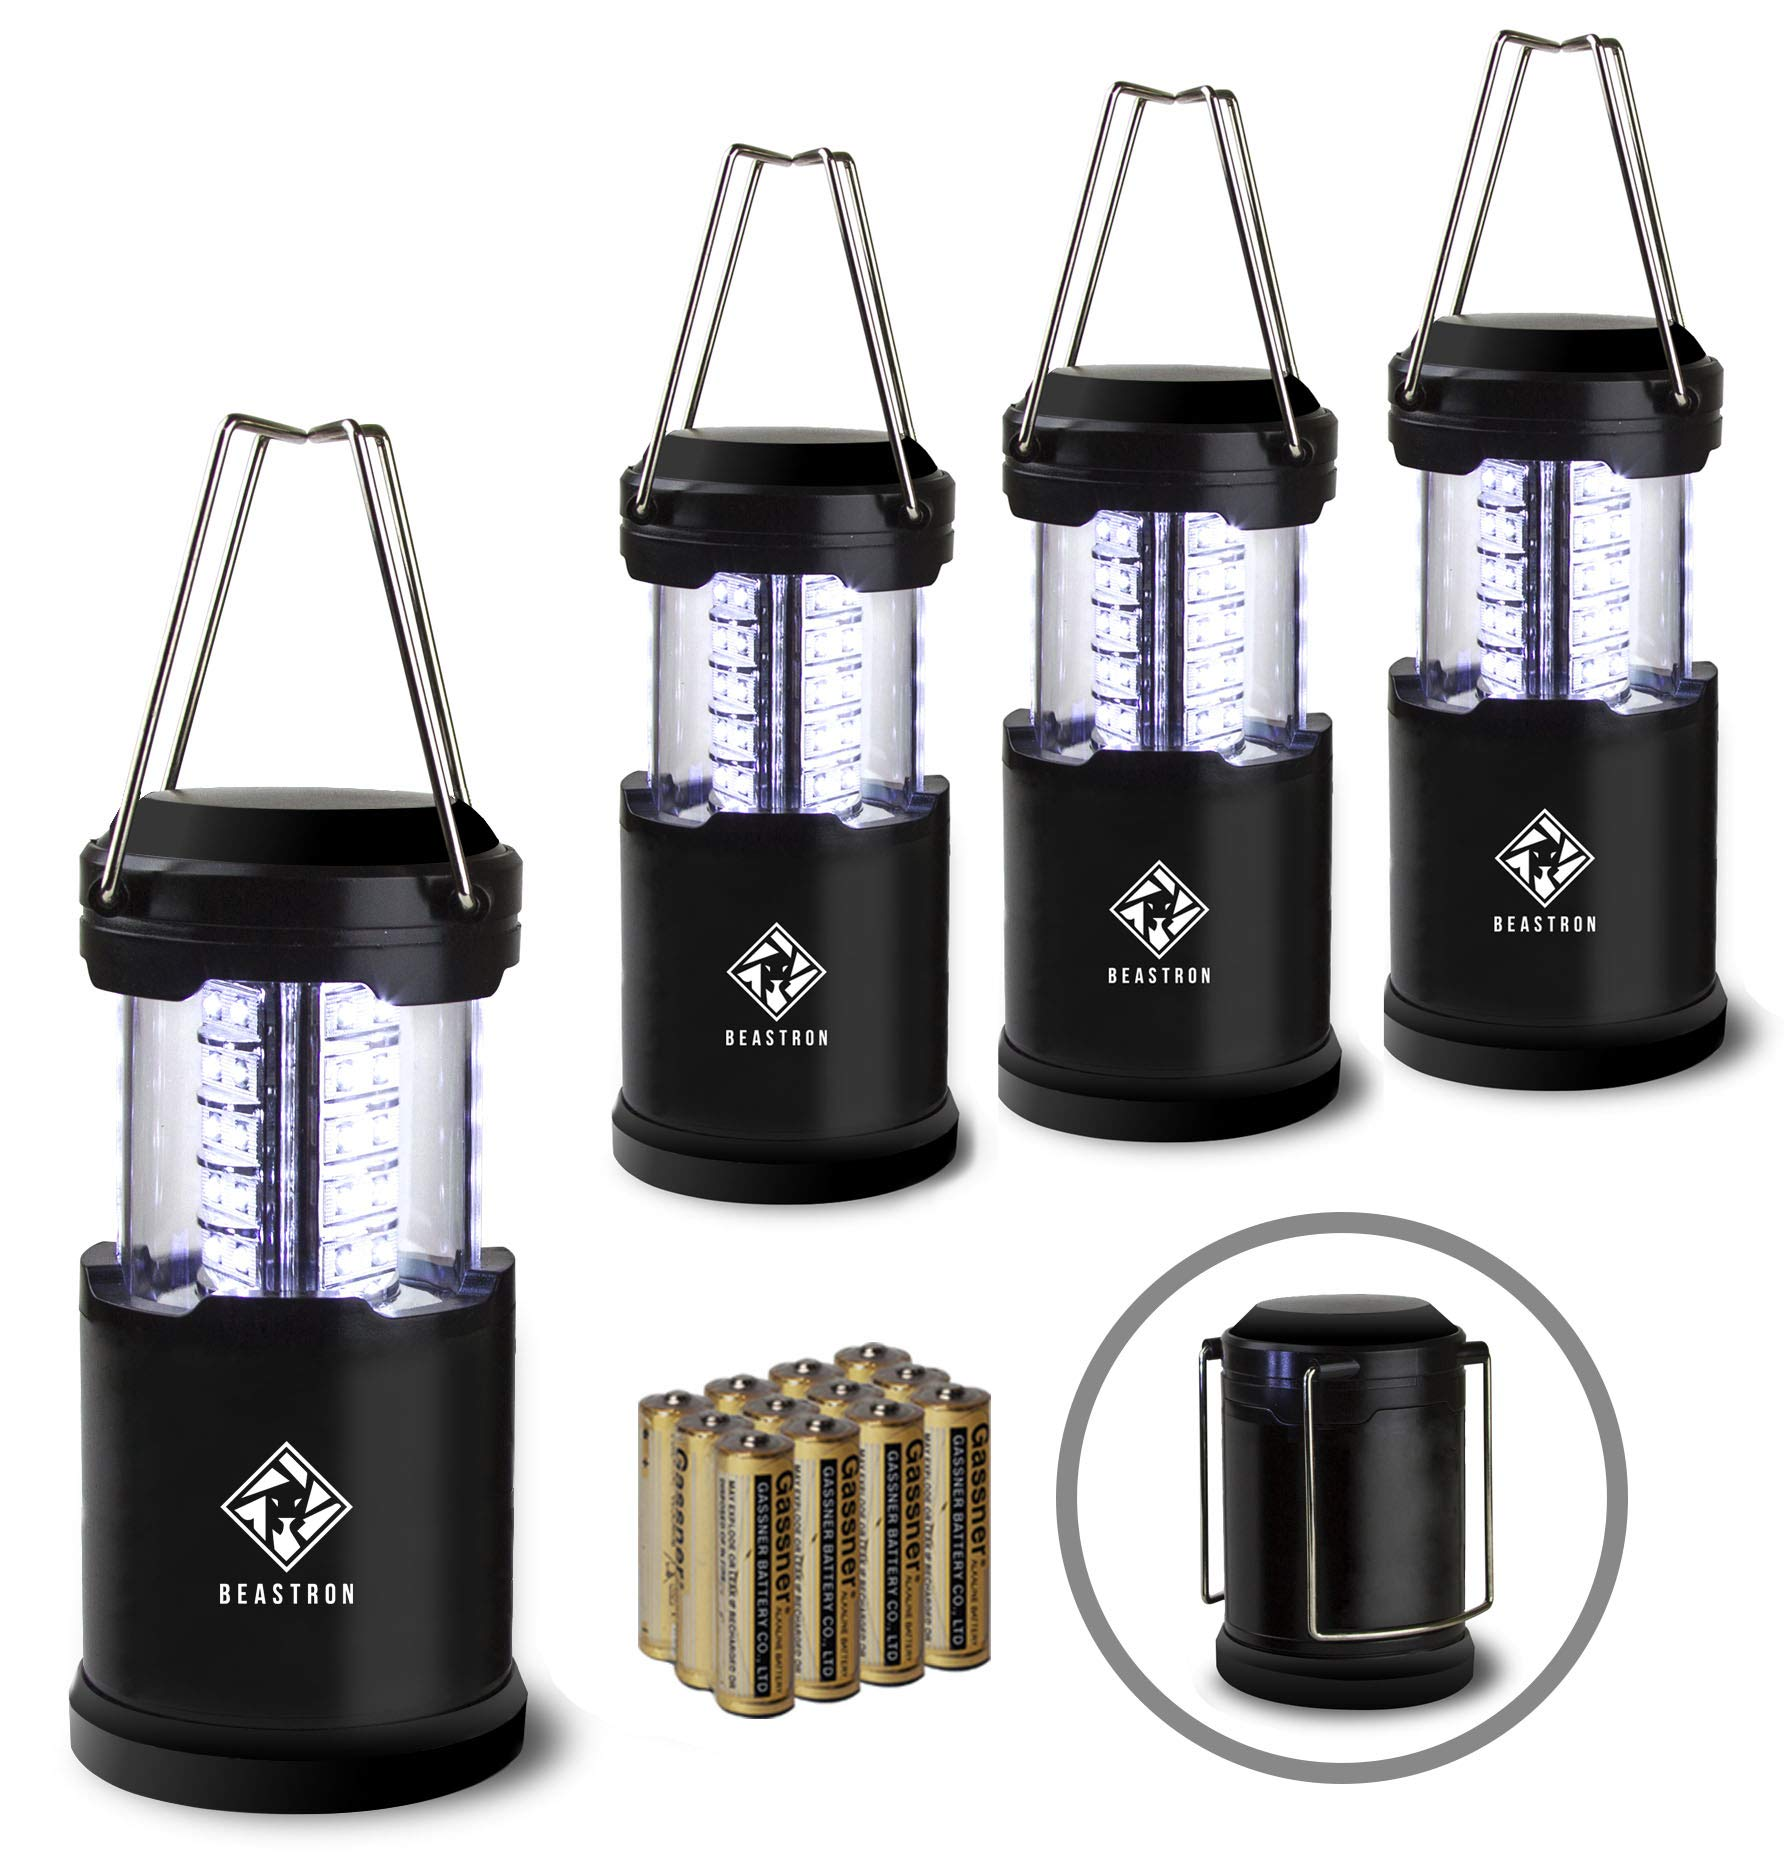 Beastron Portable LED Camping Lantern Flashlights with AA Batteries,Survival Kit for Emergency Light, Hurricane Power Outage, Storm, Outage Outdoor Portable Lanterns (4 Pack Black, Collapsible)